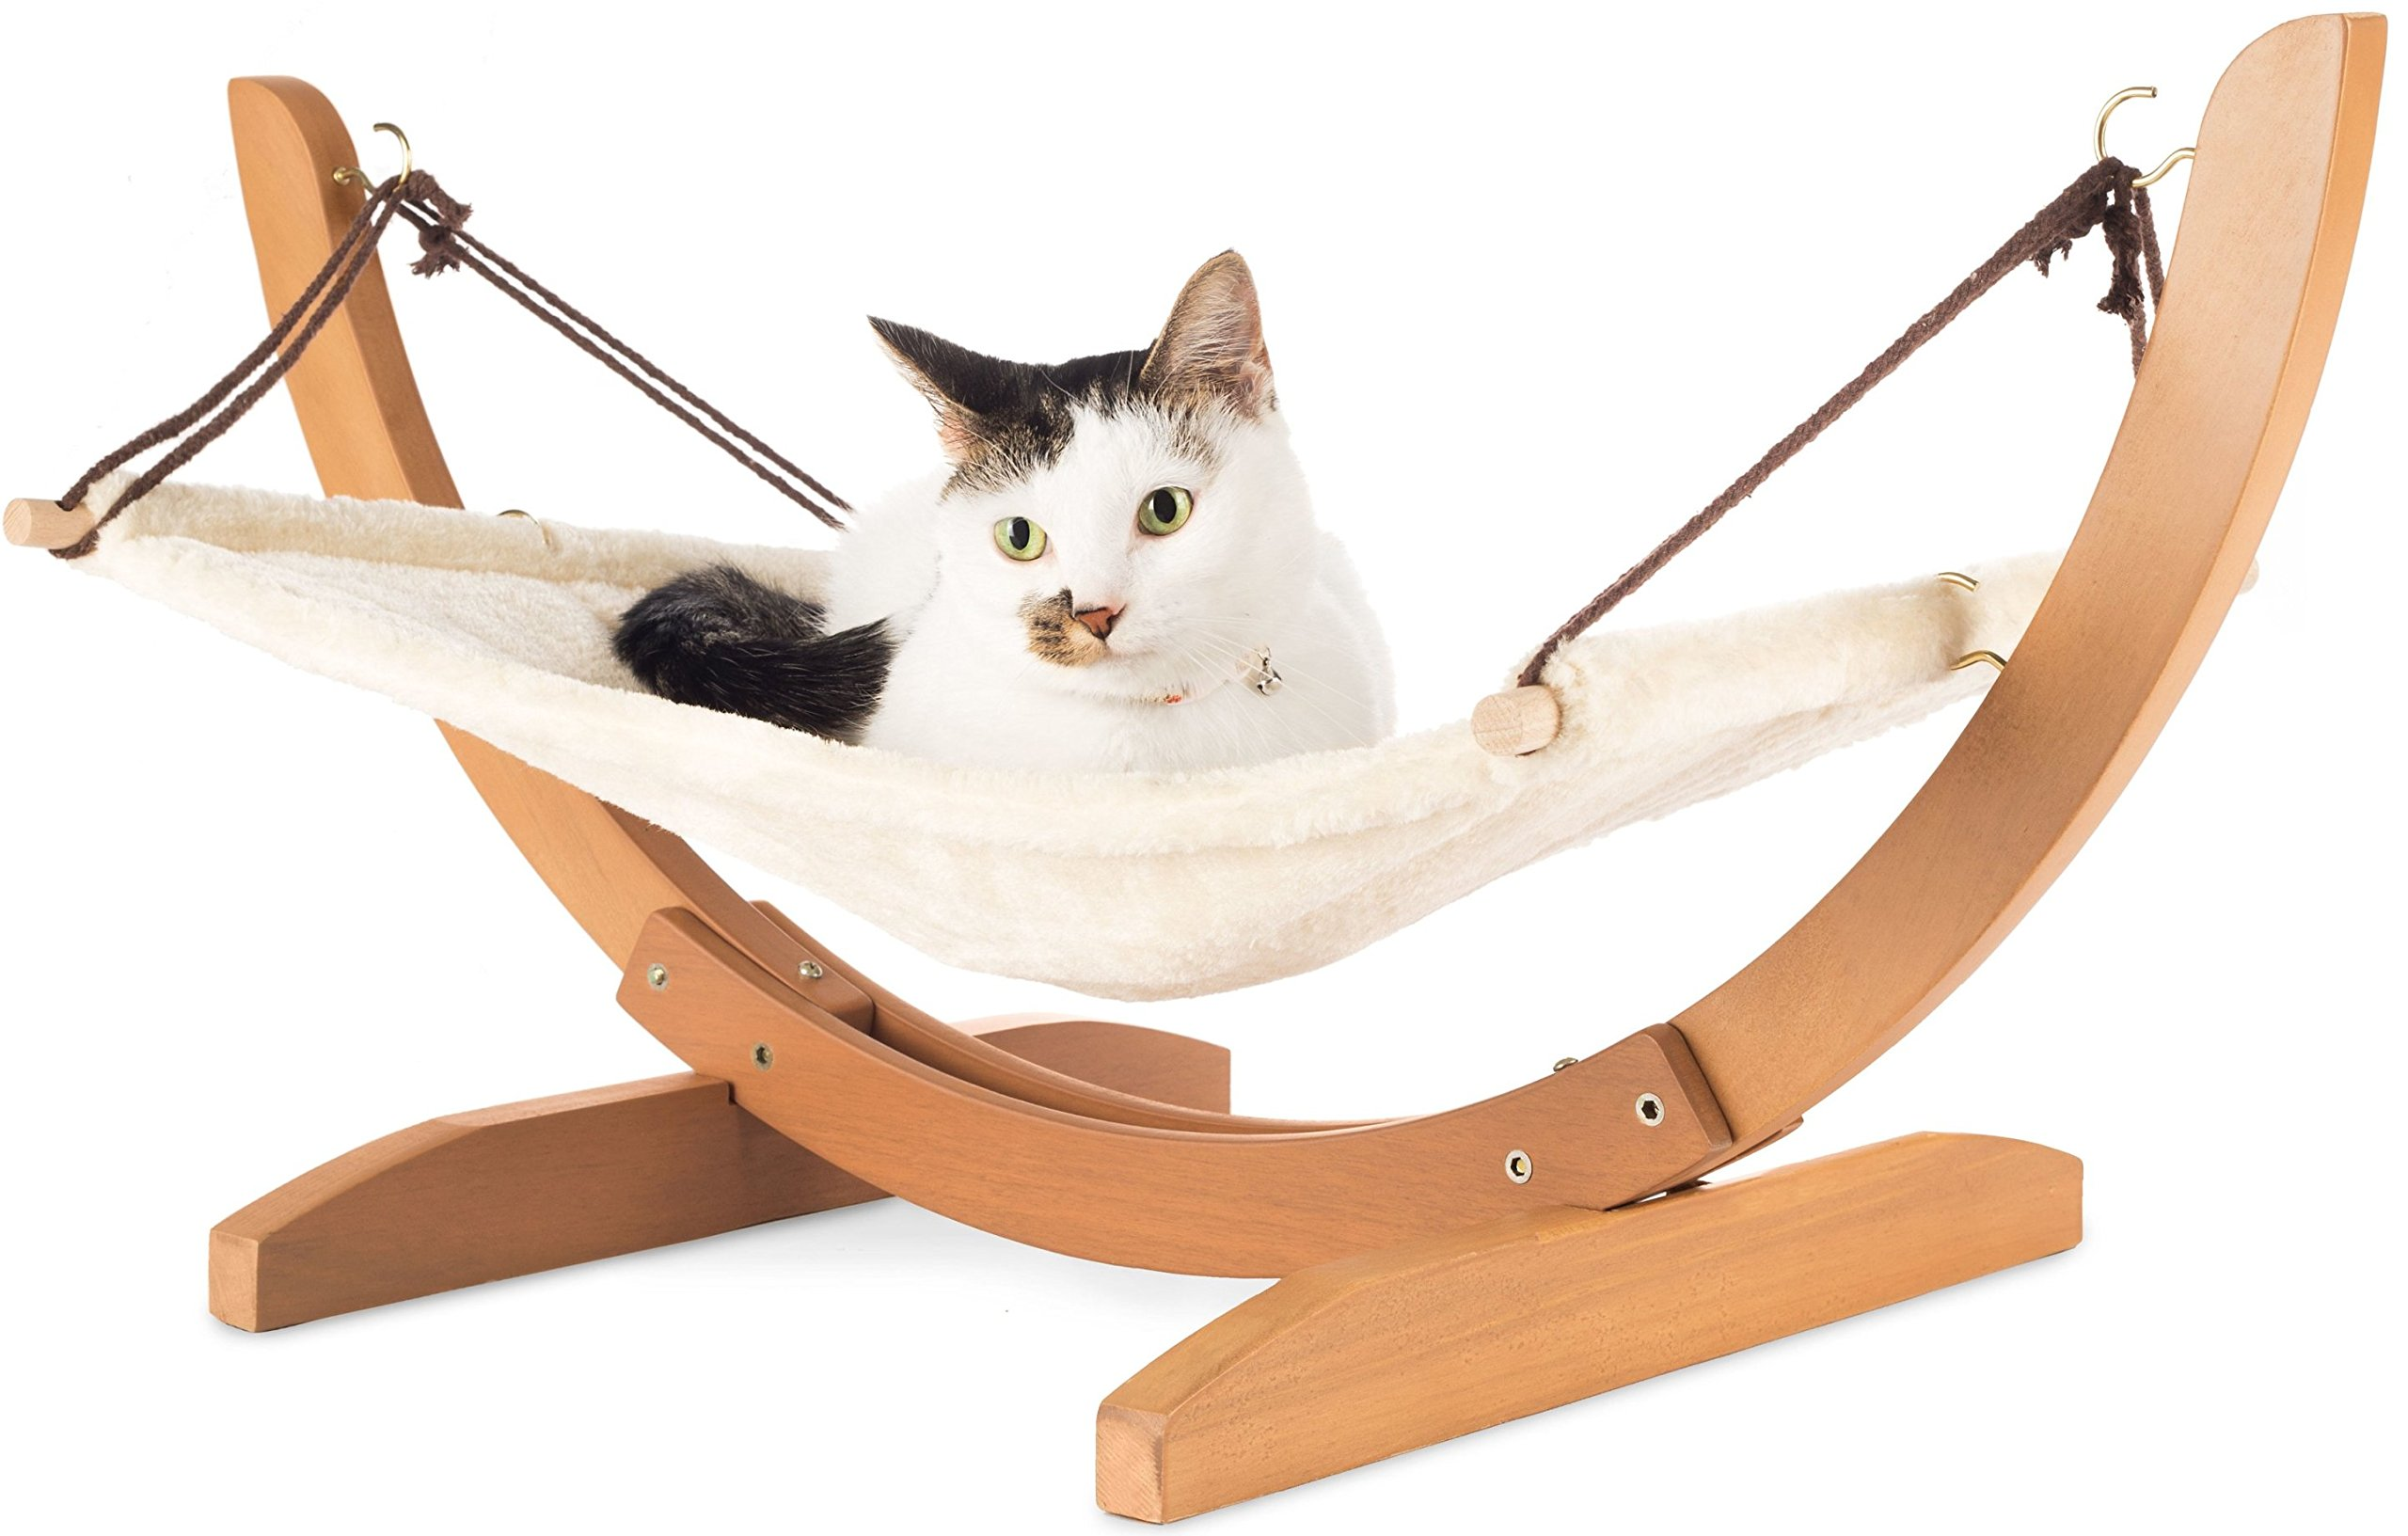 Vea pets Luxury Cat Hammock - Large Soft Plush Bed - Holds Small to Medium Size Cat or Toy Dog | Anti Sway | Attractive & Sturdy Perch | Easy to Assemble | Wood Construction 1